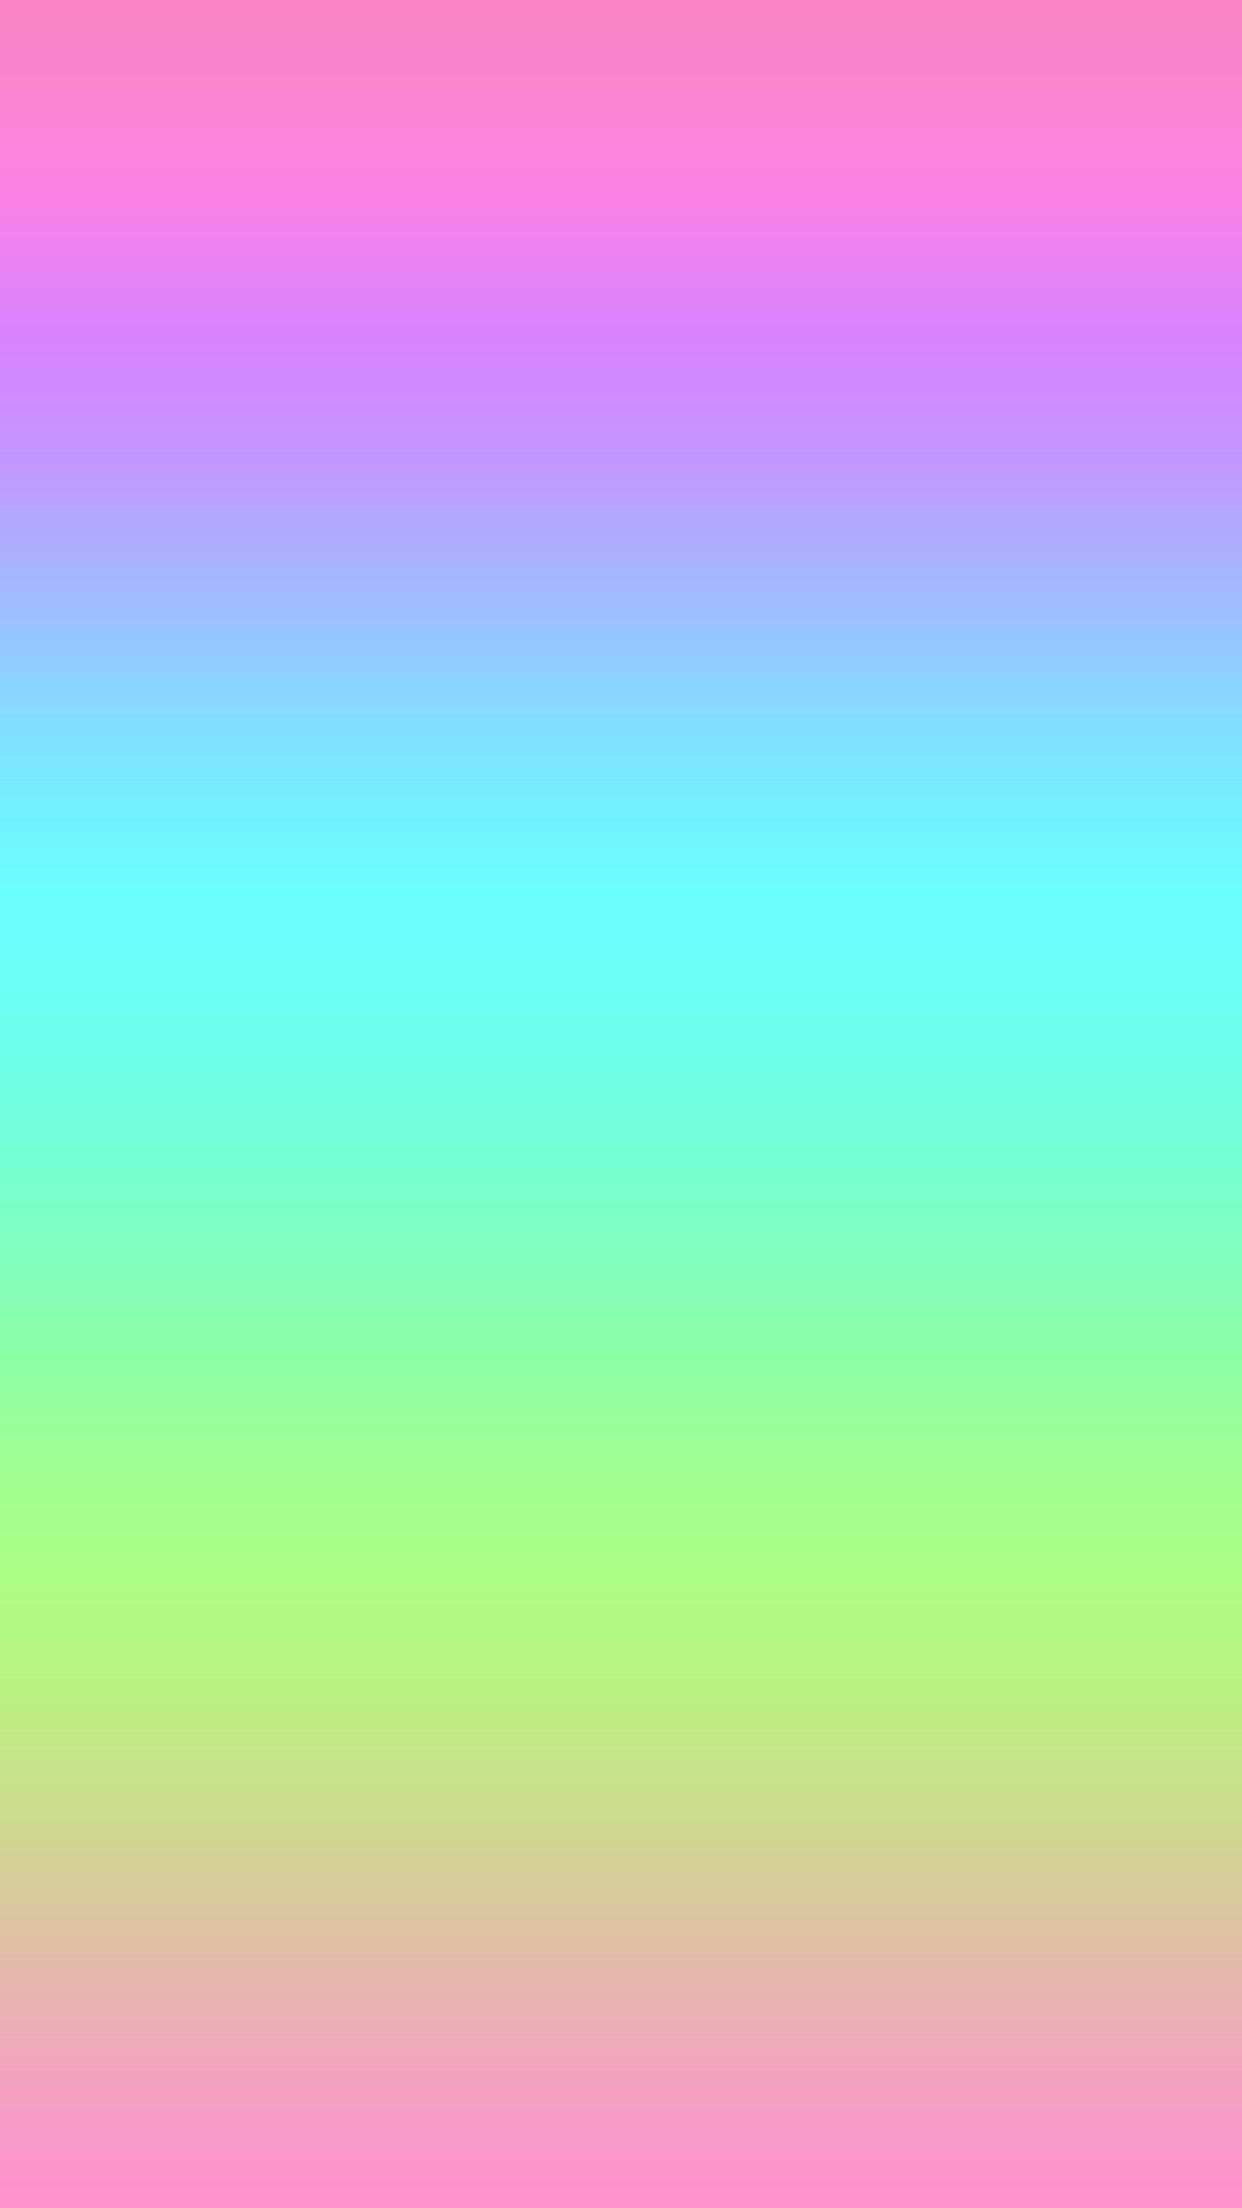 iphone pastel wallpaper hd 44_